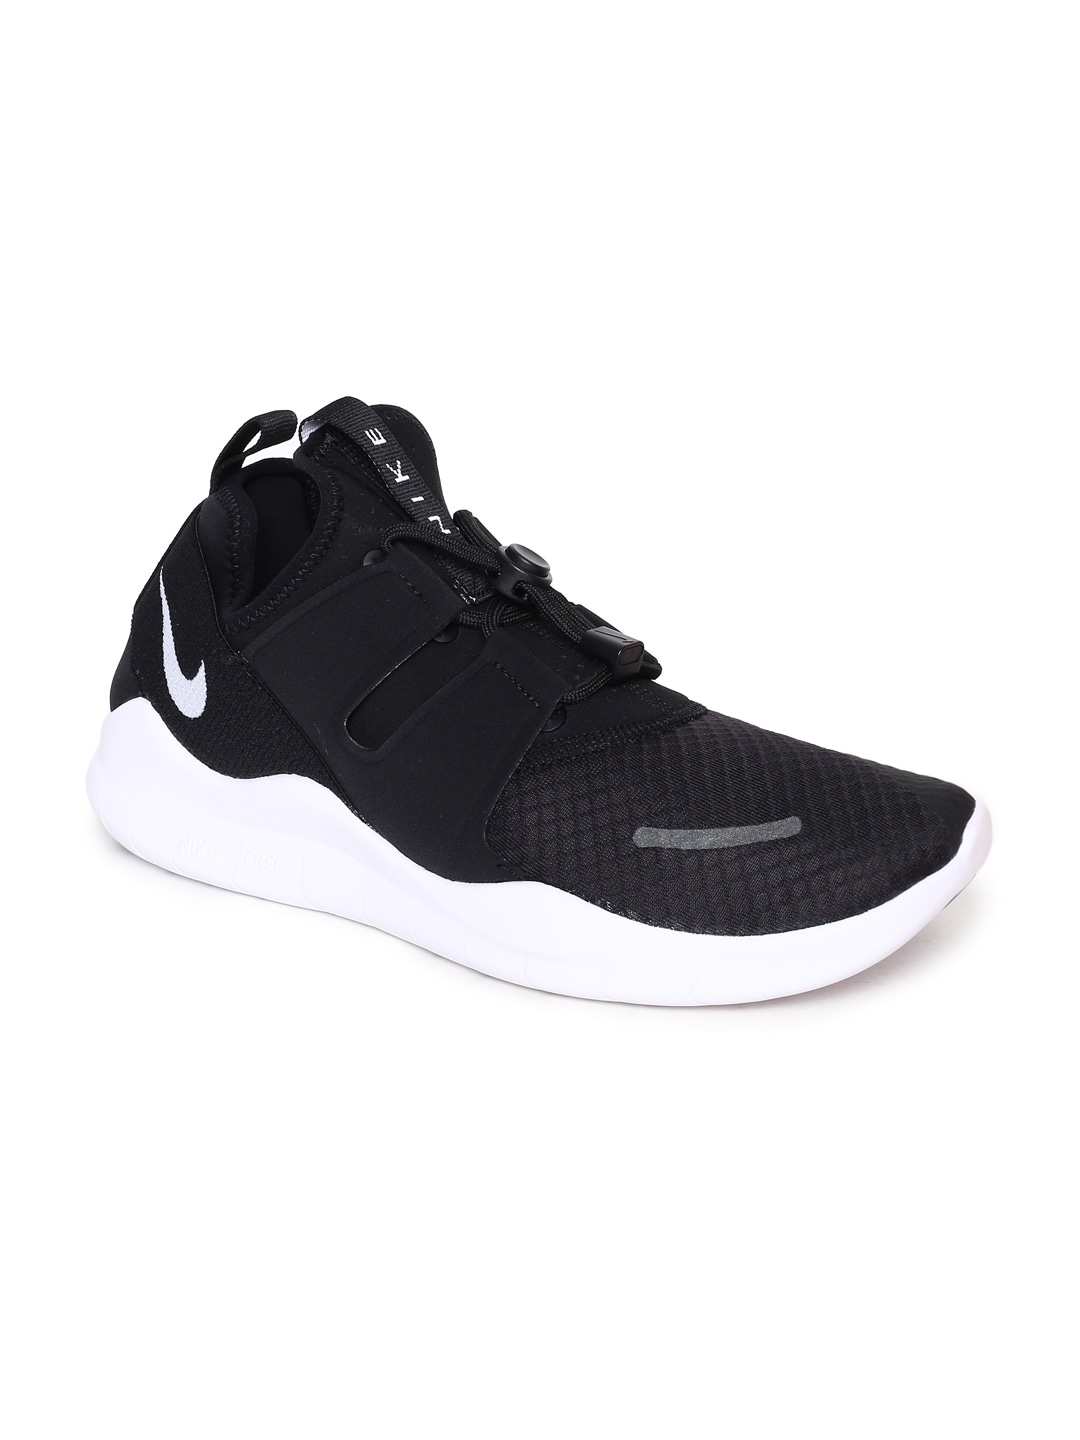 dc11479761f0d Nike Free Running Shoes - Buy Nike Free Running Shoes online in India